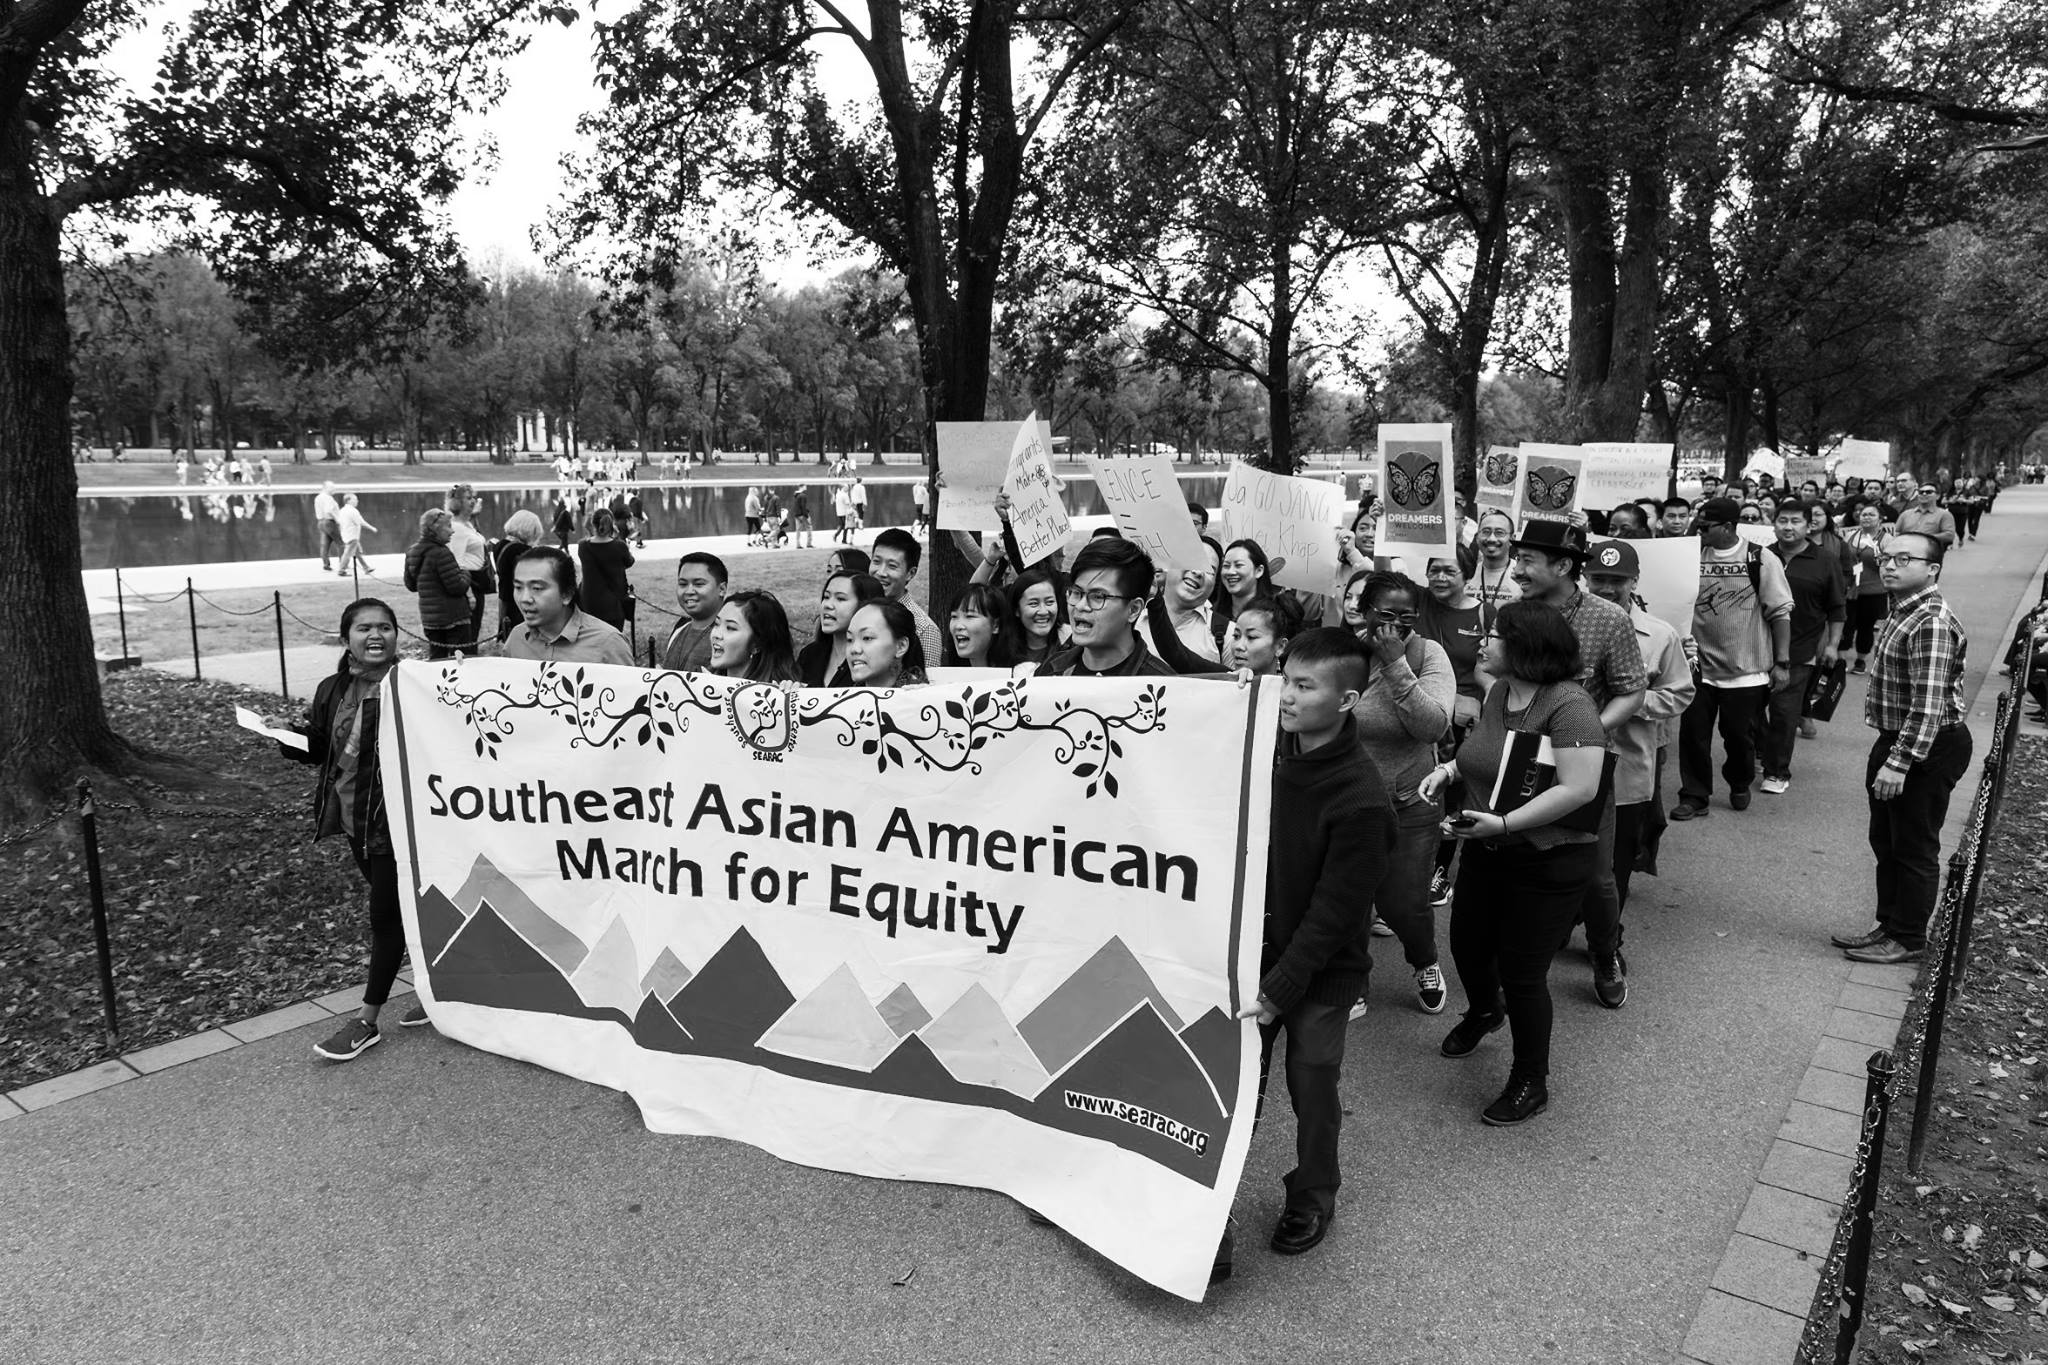 Vanessa participates in the equity march at the inaugural Moving Mountains: A Southeast Asian American Equity Summit in Washington, D.C. (photo credit: SEARAC)